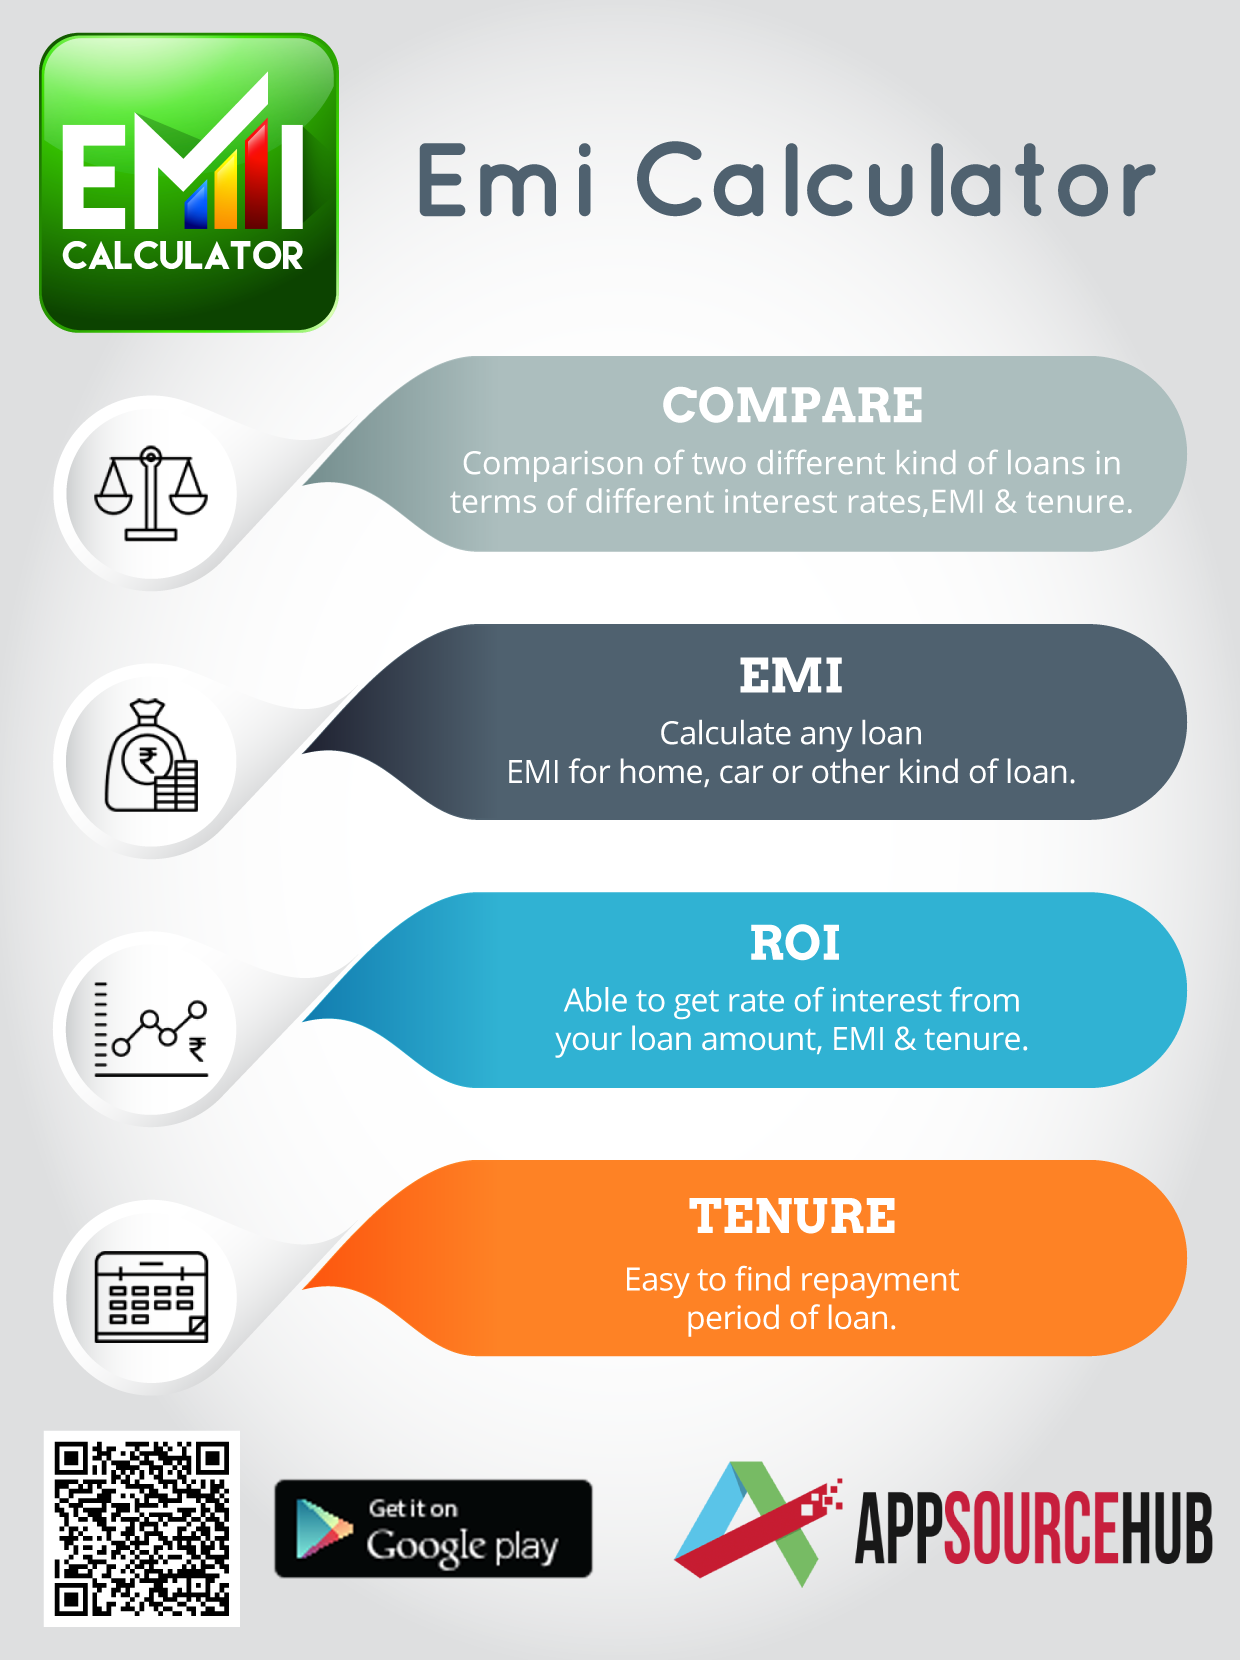 Apply For Car Loan Online At Lowest Interest Rate And Calculate Your Emi By Using Our Car Loan Calculator App Finance Loans Loan Calculator Car Loan Calculator